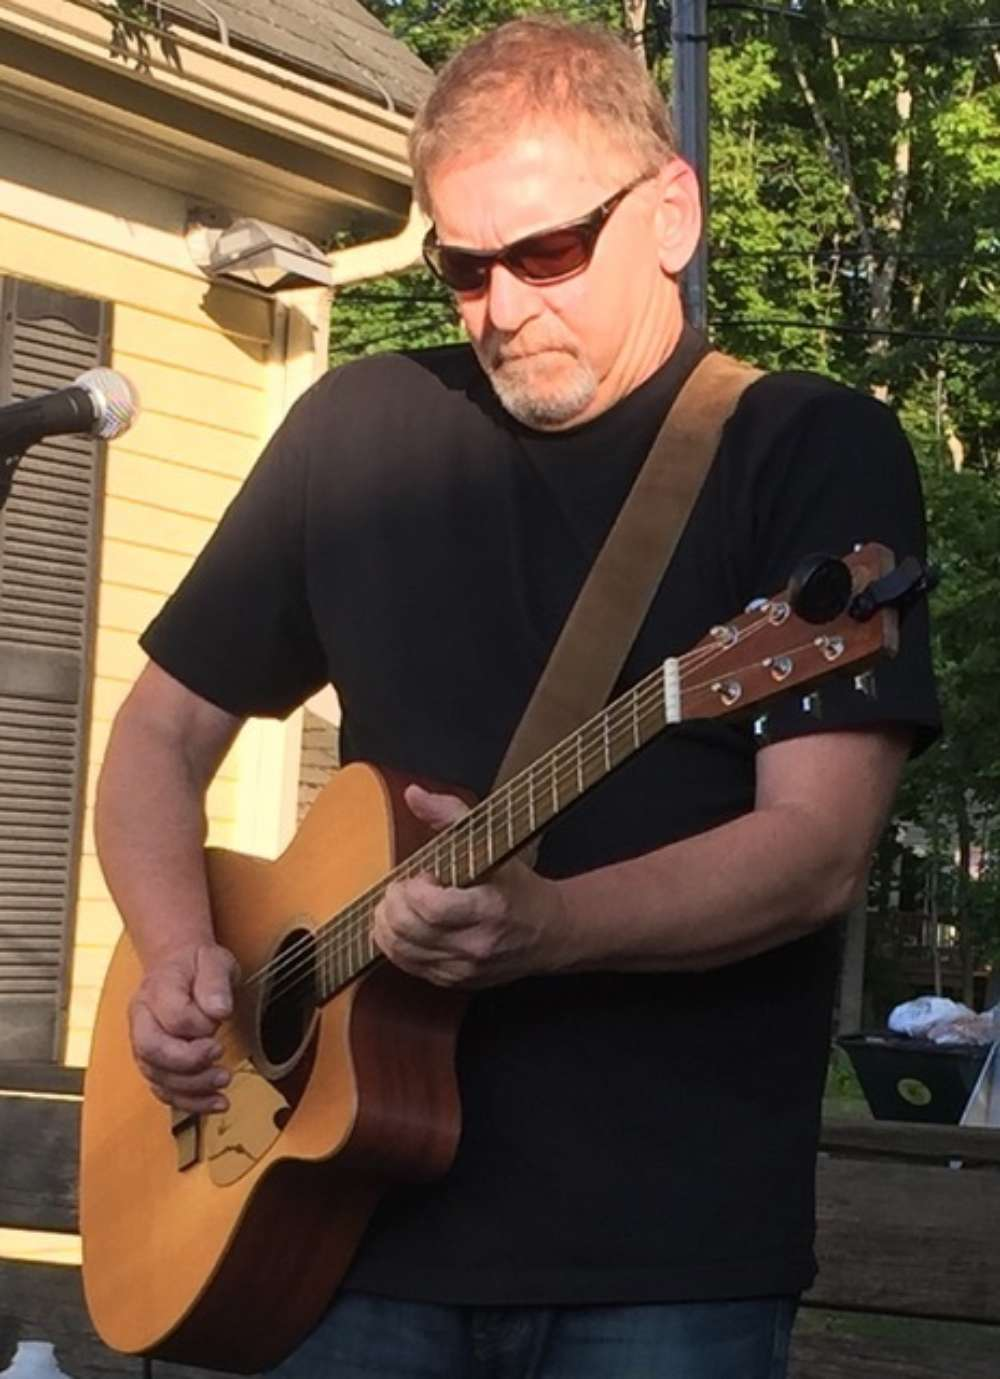 Scot Stinson has performed around southern Maine for 45 years. You can catch his loop artistry at Billy's Chowder House in Wells.